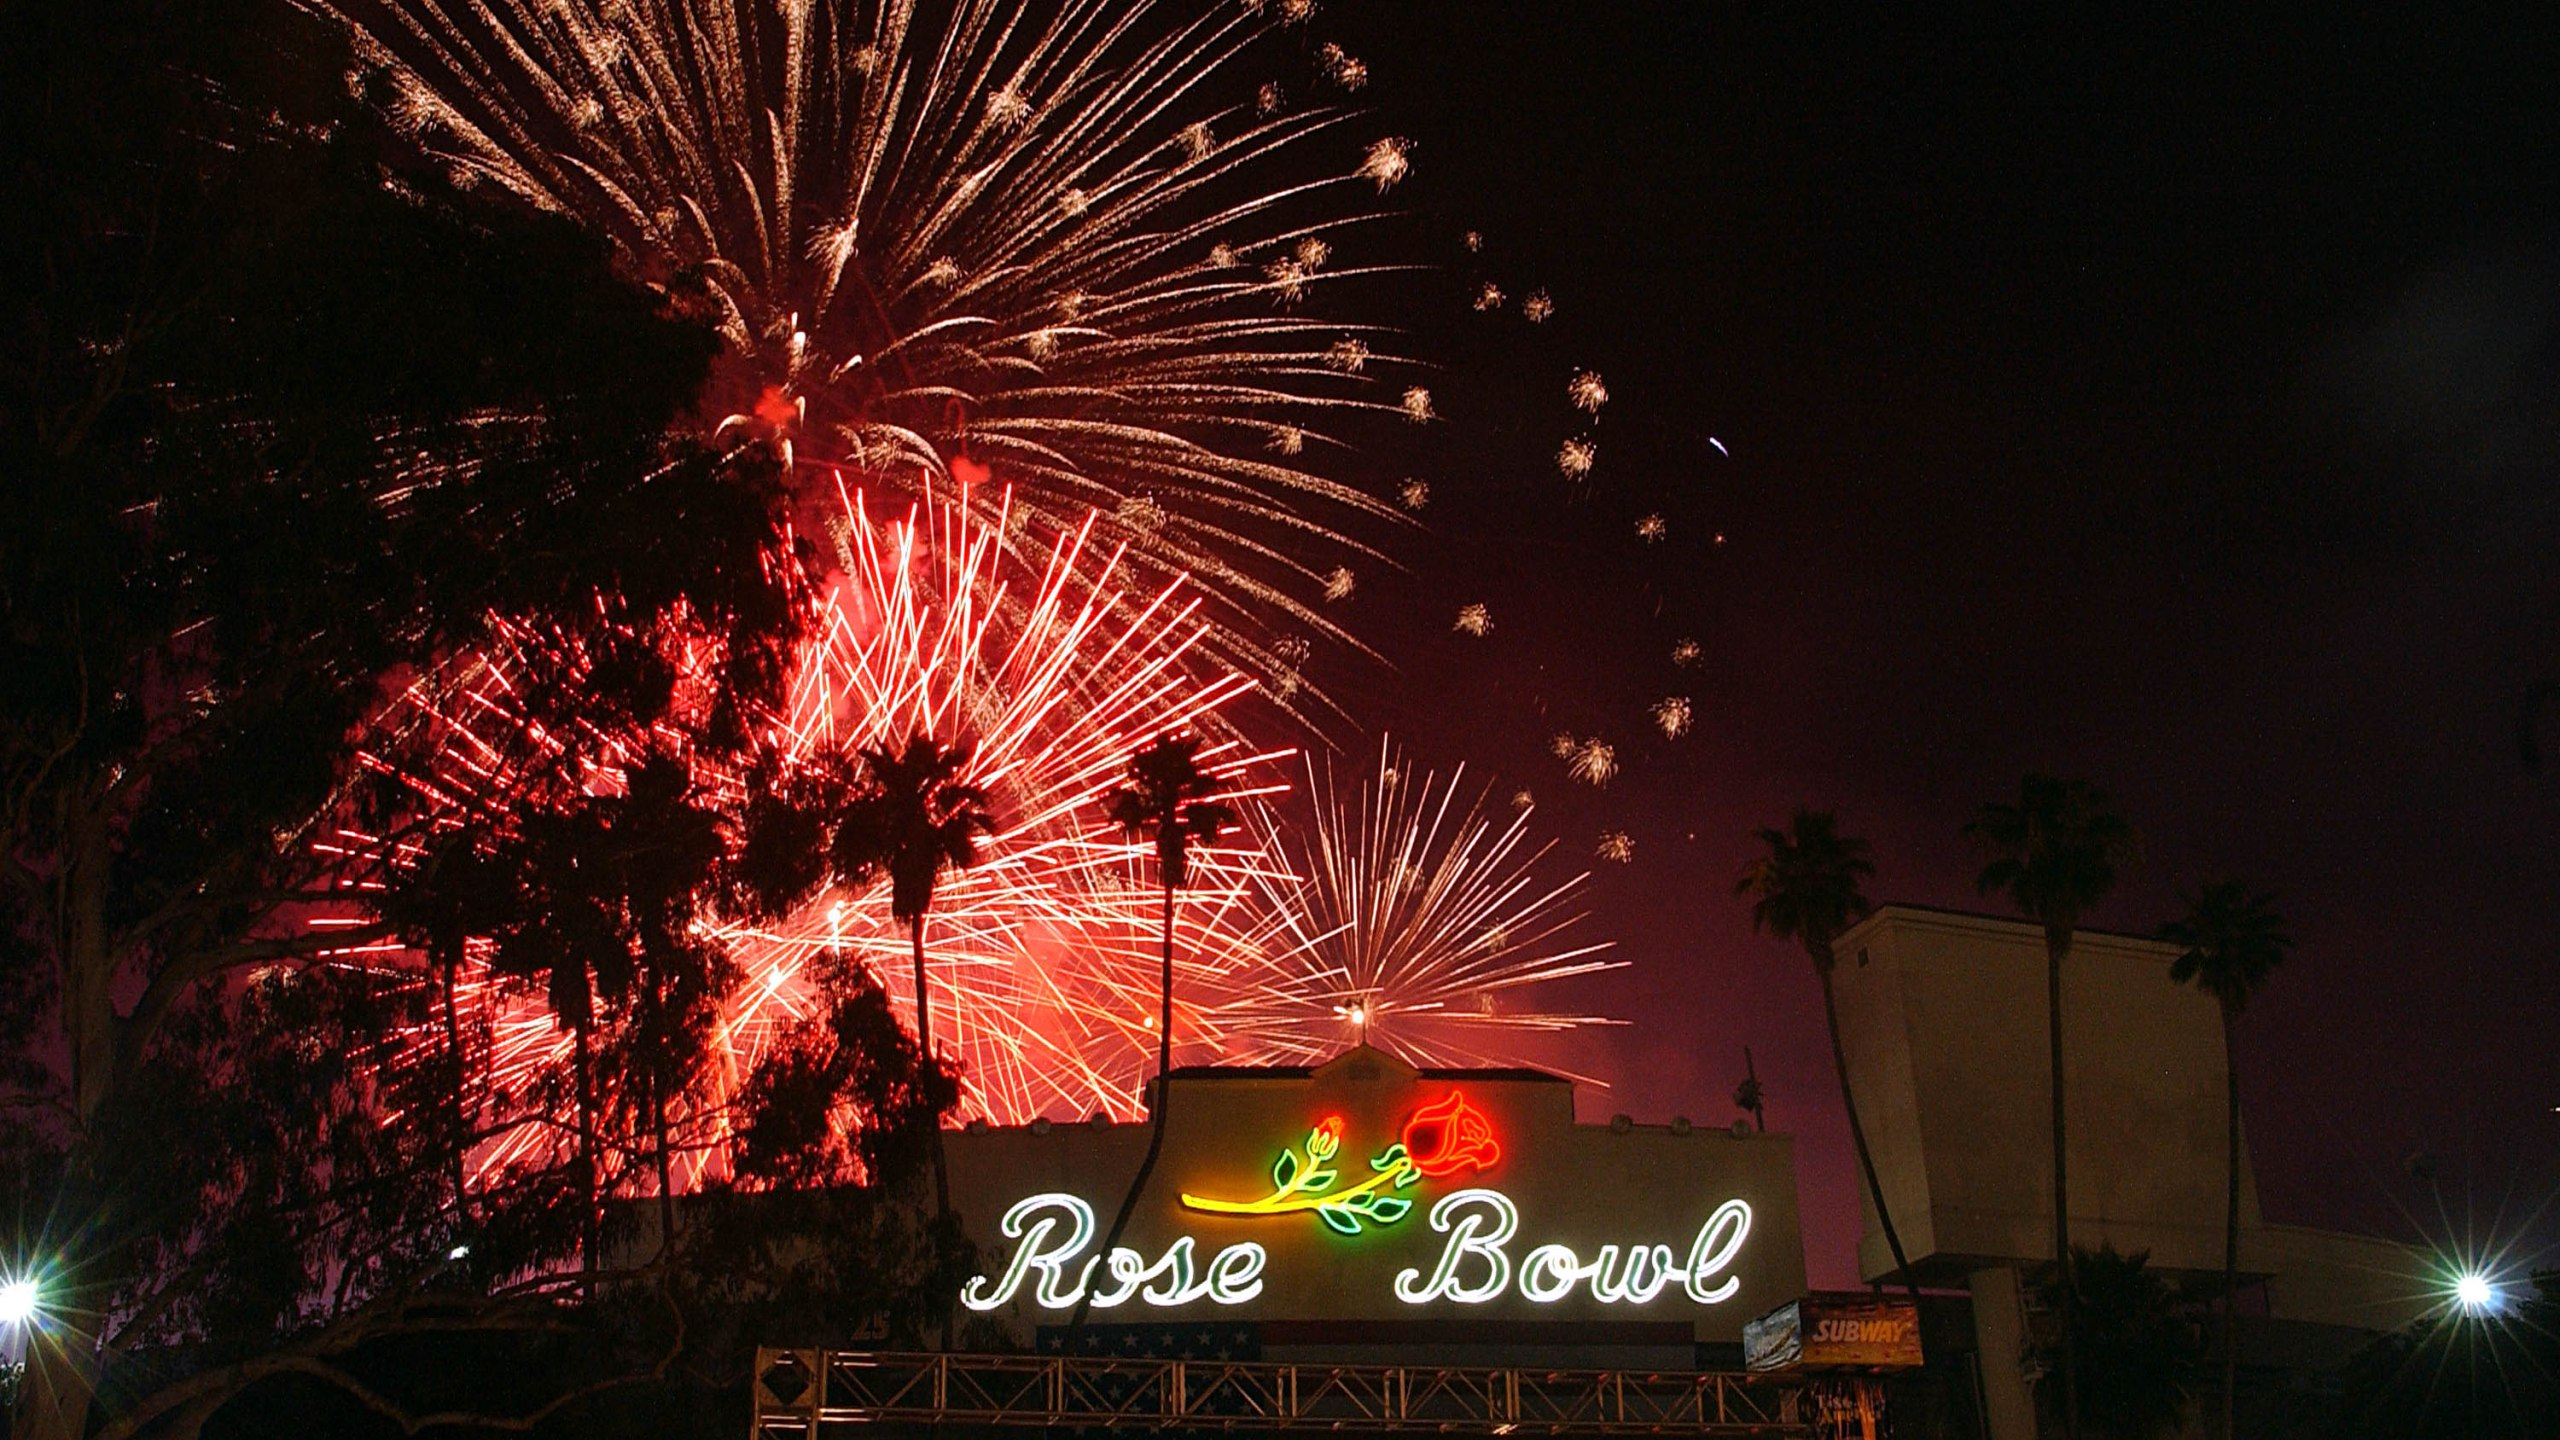 Fireworks explode over the Rose Bowl during a Fourth of July celebration in this file photo. (Credit: Steve Grayson / WireImage)